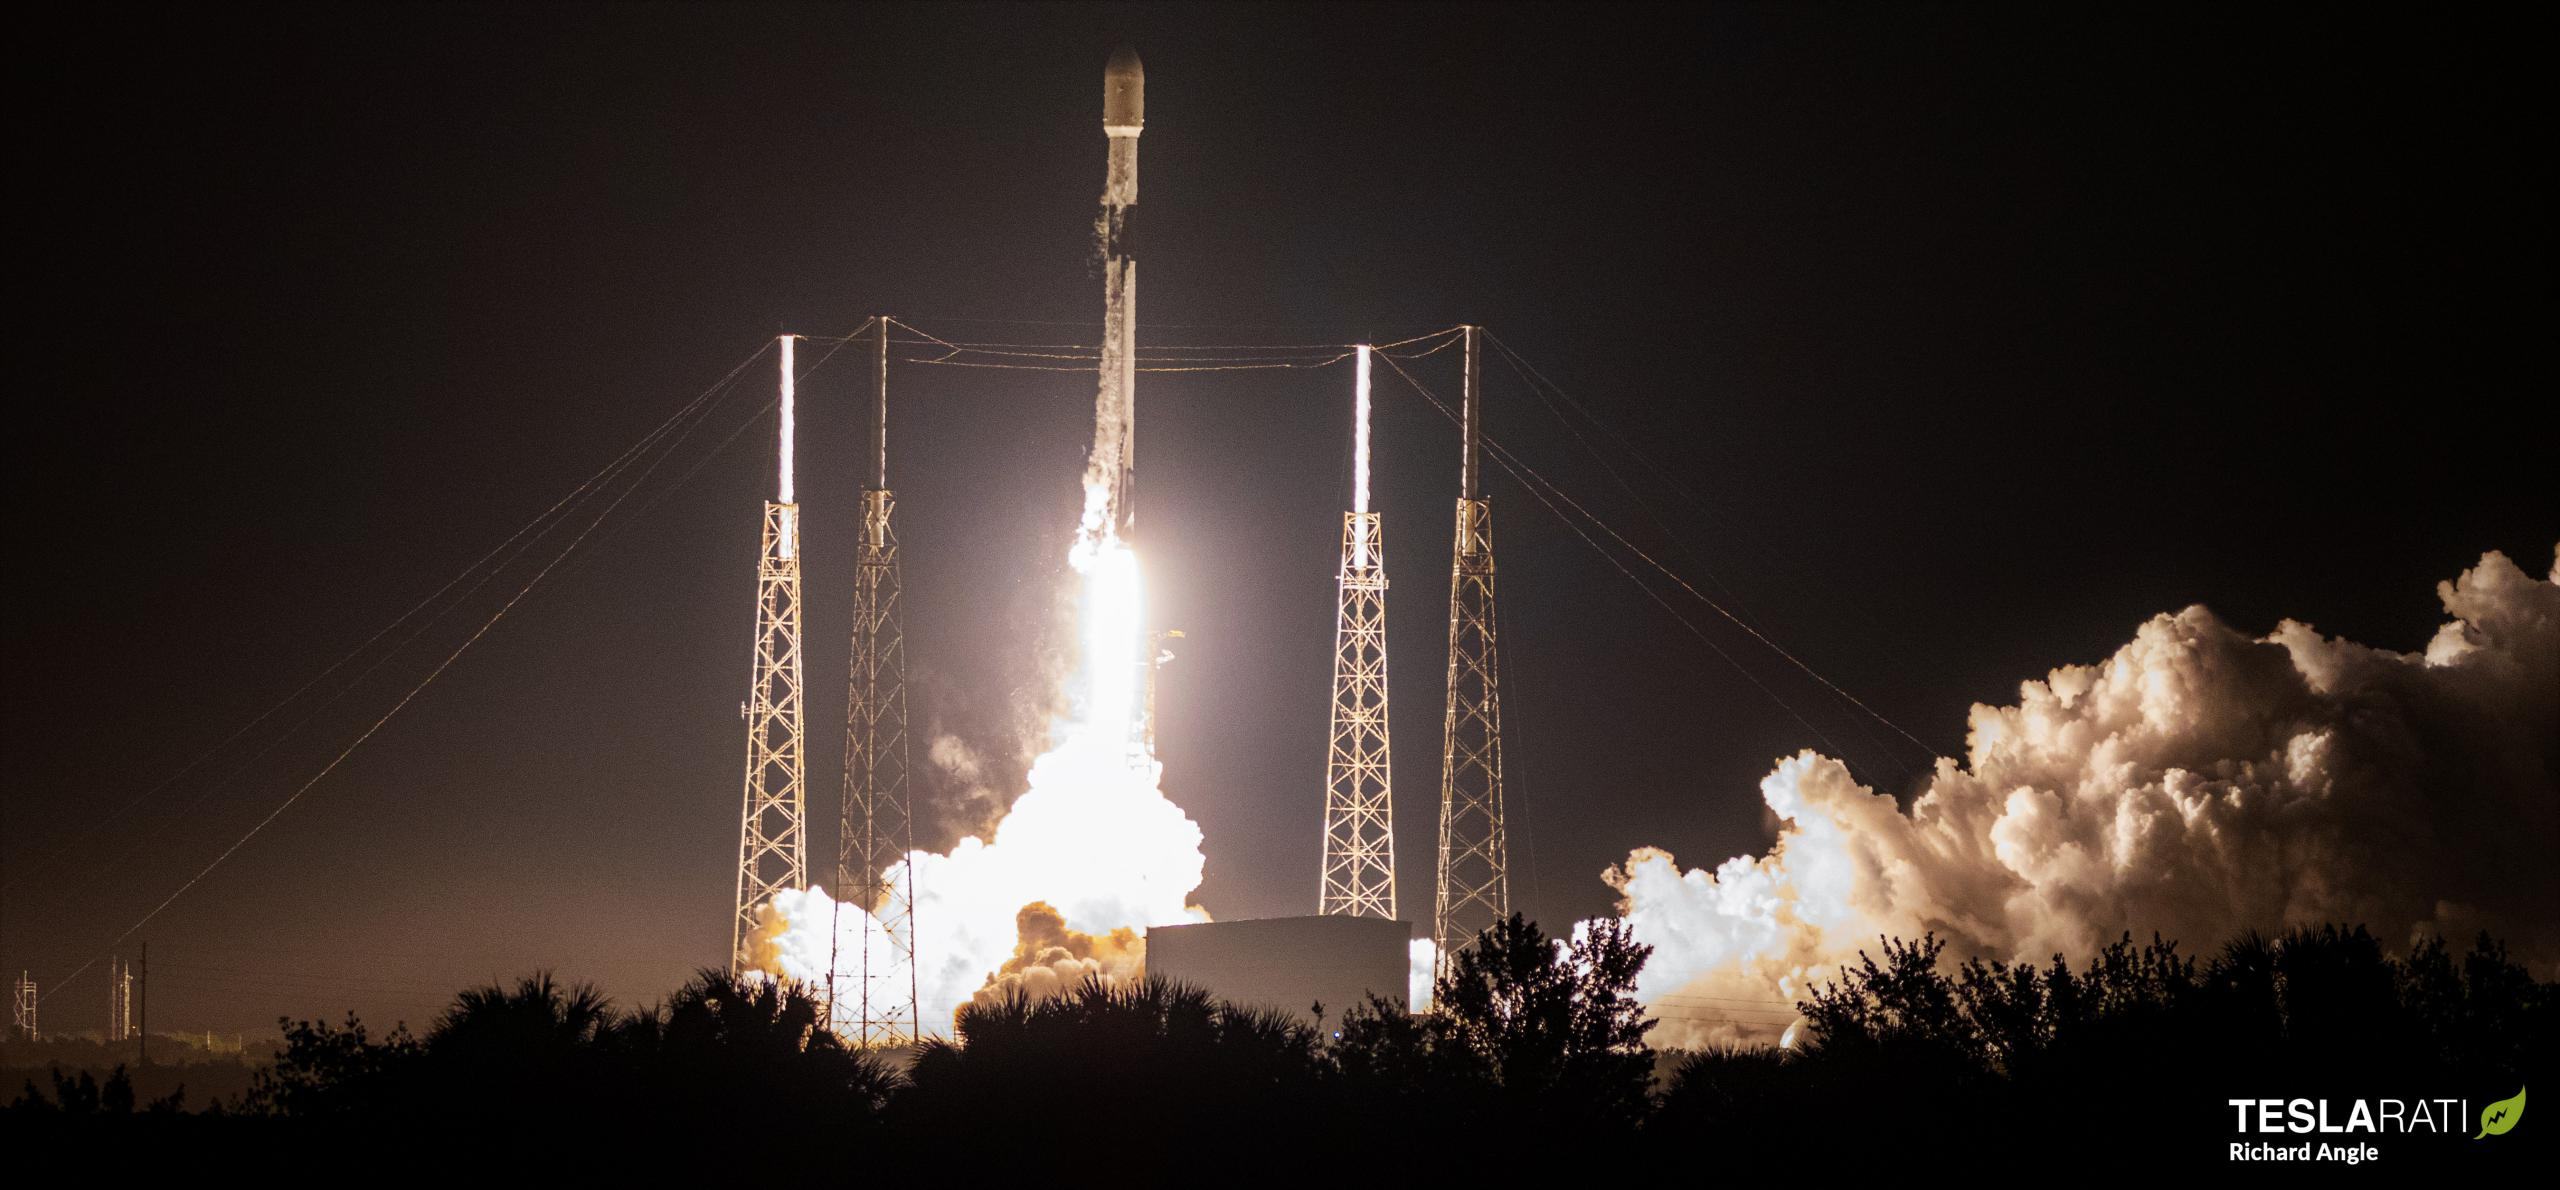 Starlink-20 Falcon 9 B1058 LC-40 031121 (Richard Angle) launch 1 crop (c)